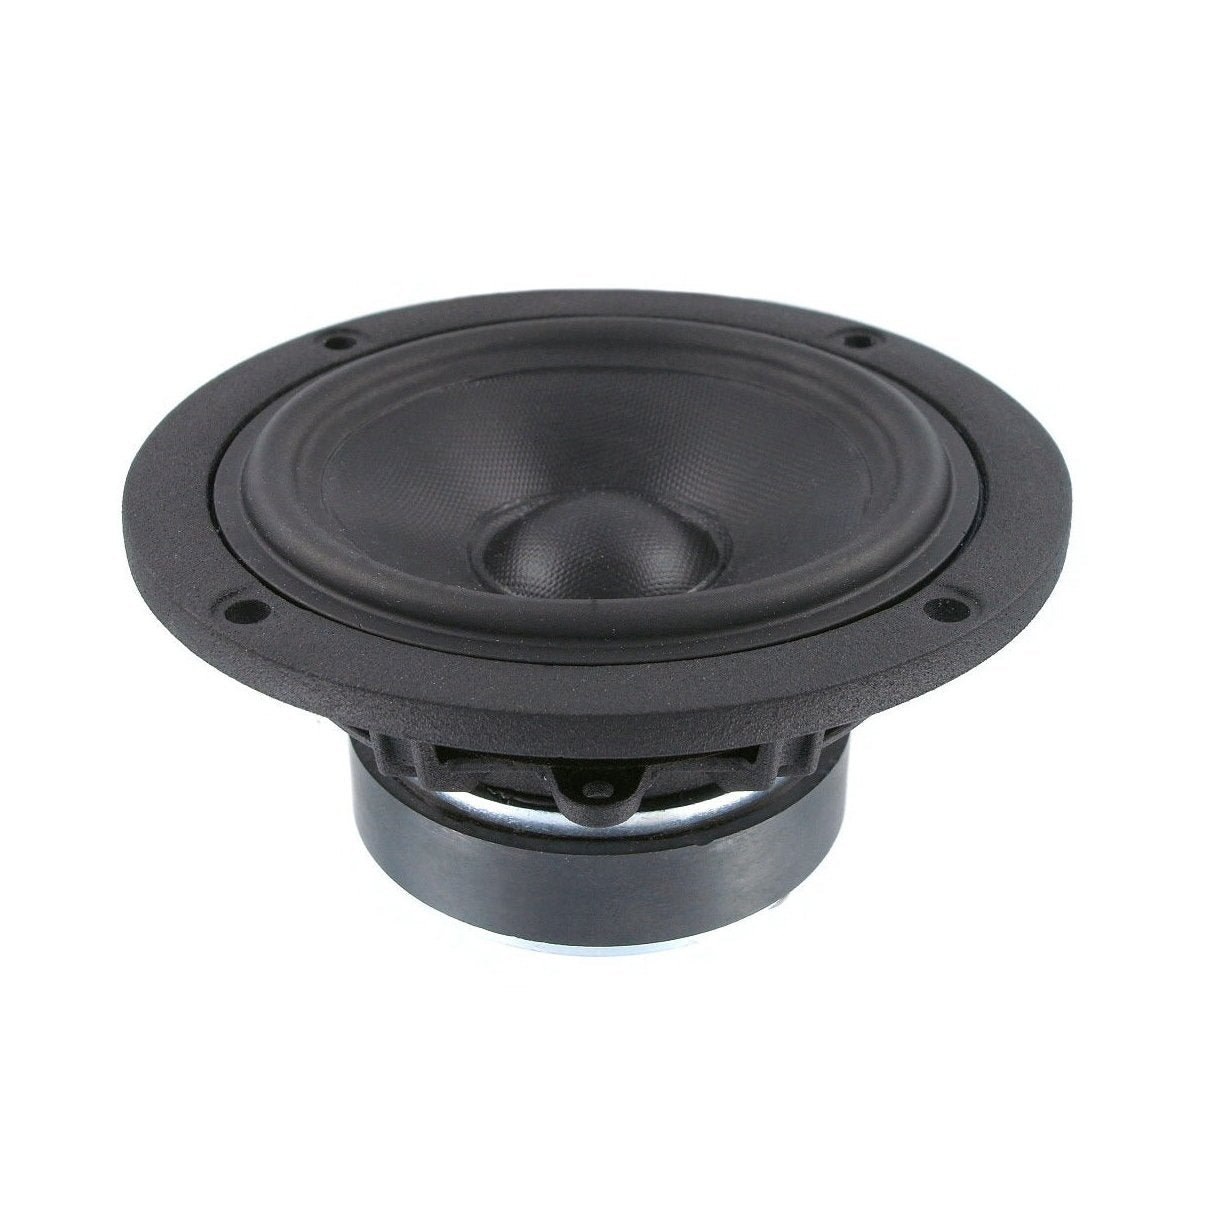 Scanspeak Discovery 12W/4524G00 Midwoofer - Willys-Hifi Ltd